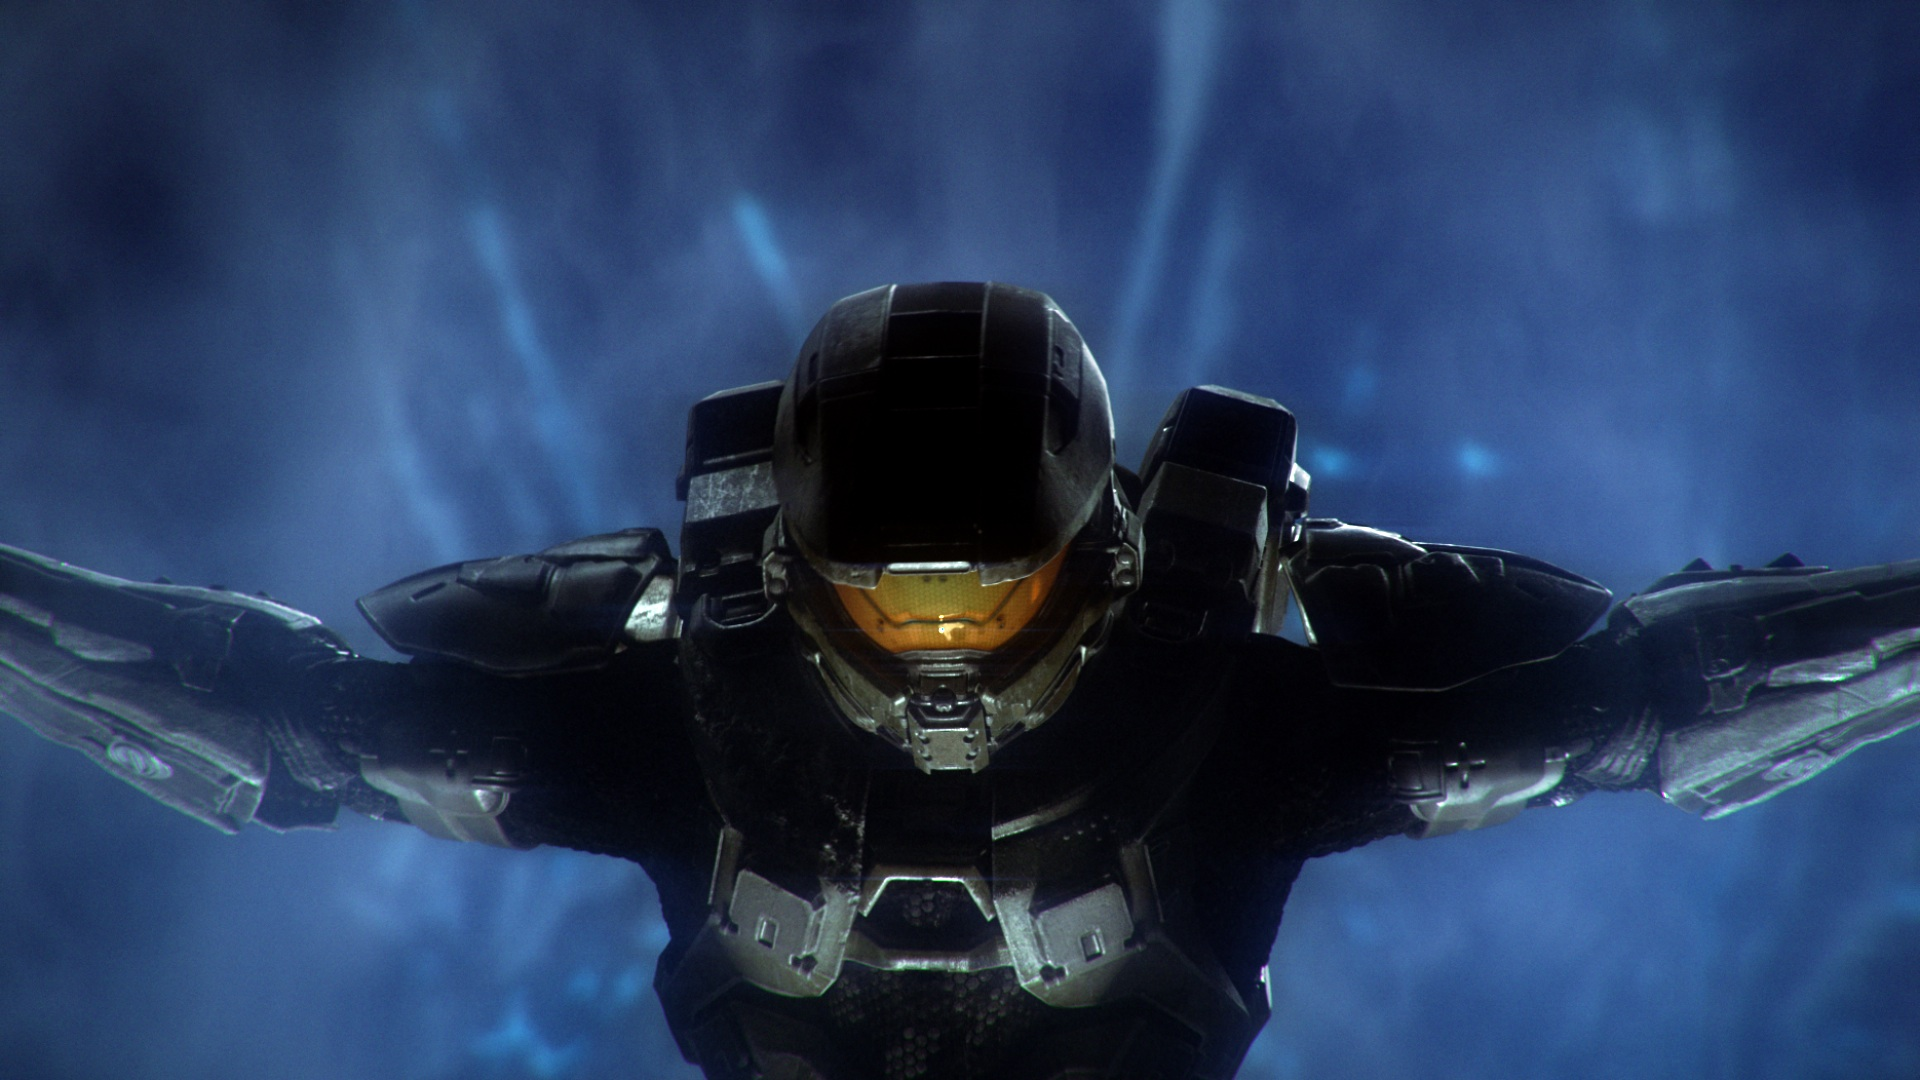 file_3981_Halo-4-Launch-Trailer-Scanned-Master-Chief